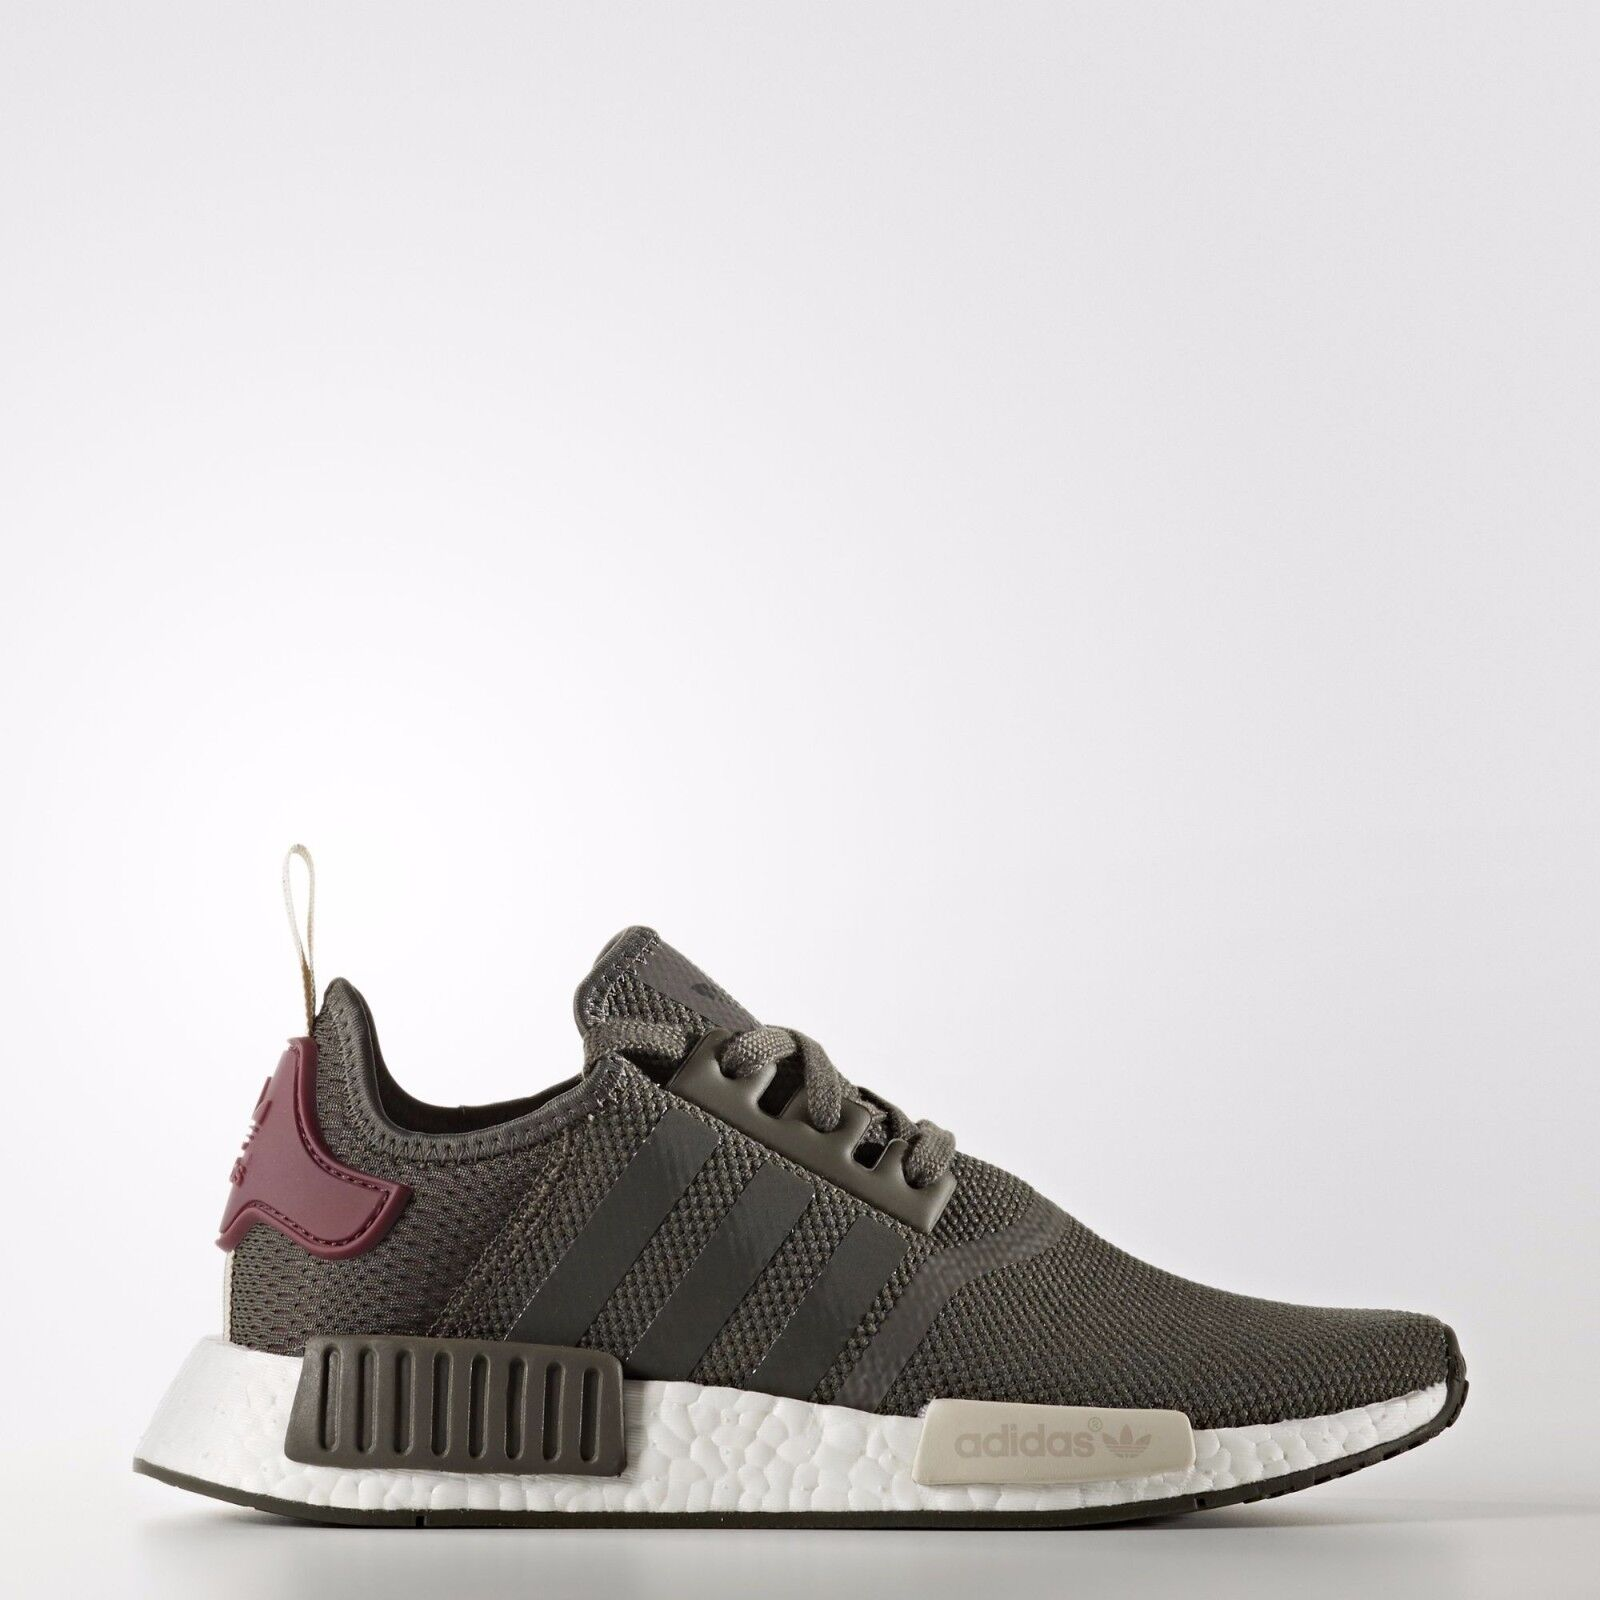 Womens Adidas NMD Nomad ba7752 olive green maroon burgundy R1 boost sneaker new · $129.94 · Athletic